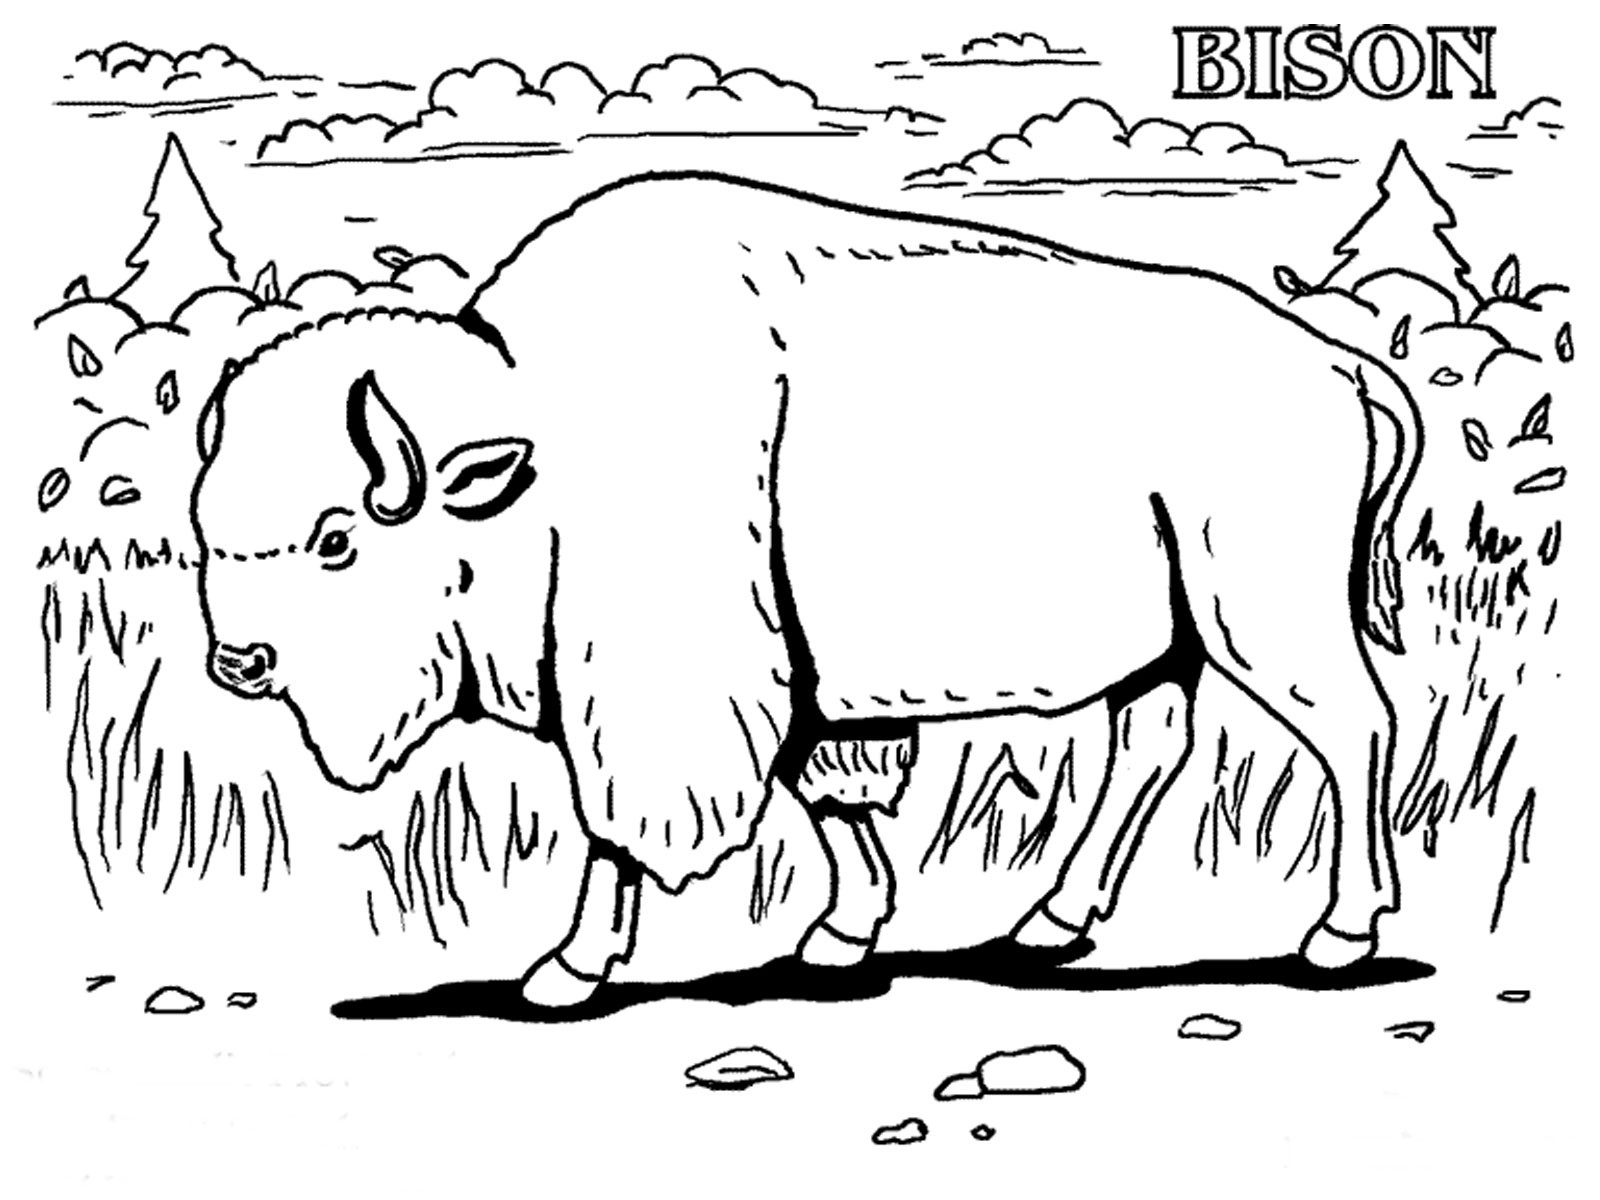 1600x1200 Bison Coloring Pages